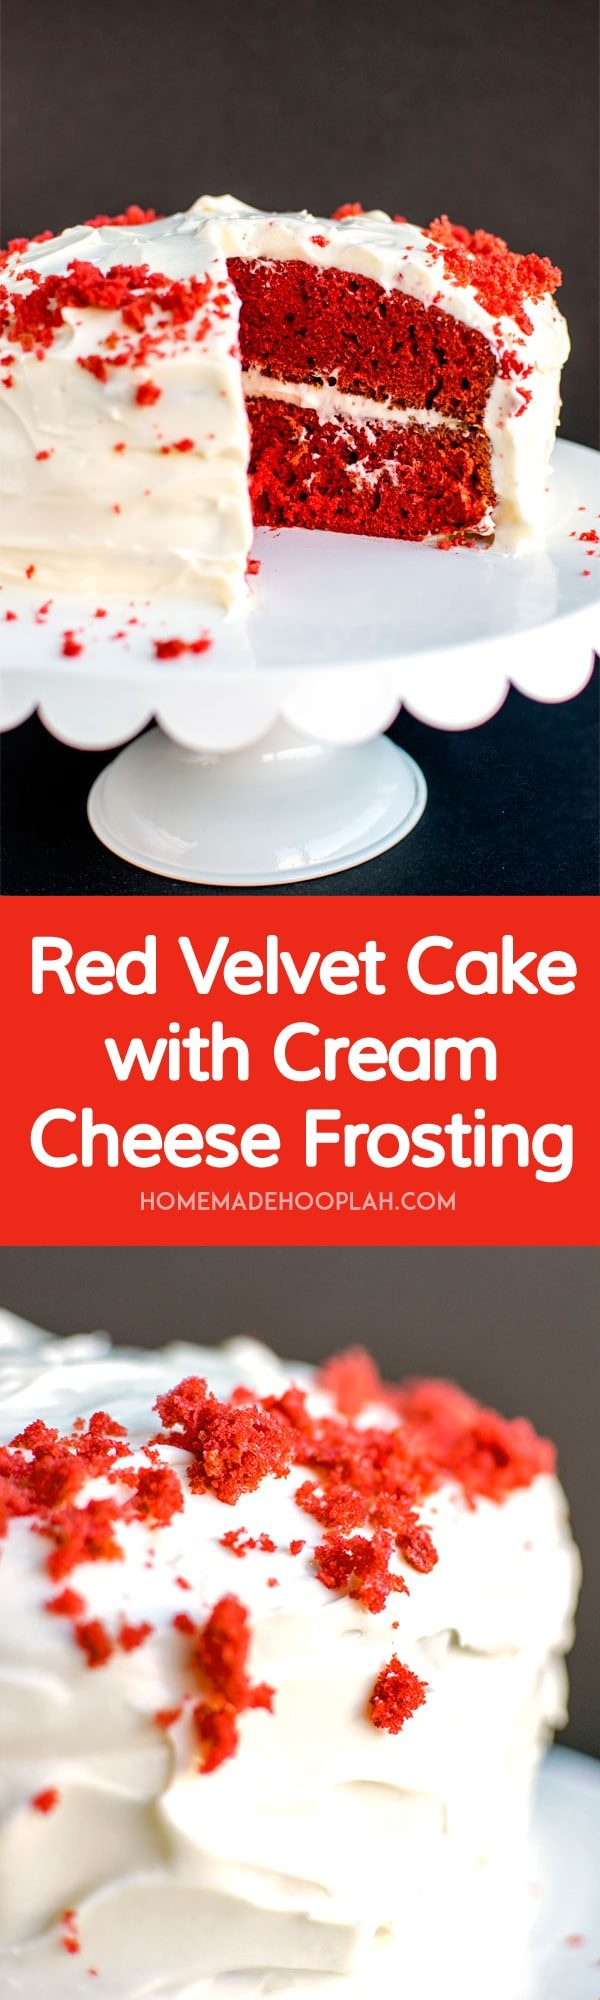 Red Velvet Cake with Cream Cheese Frosting! Moist and spongy red ...